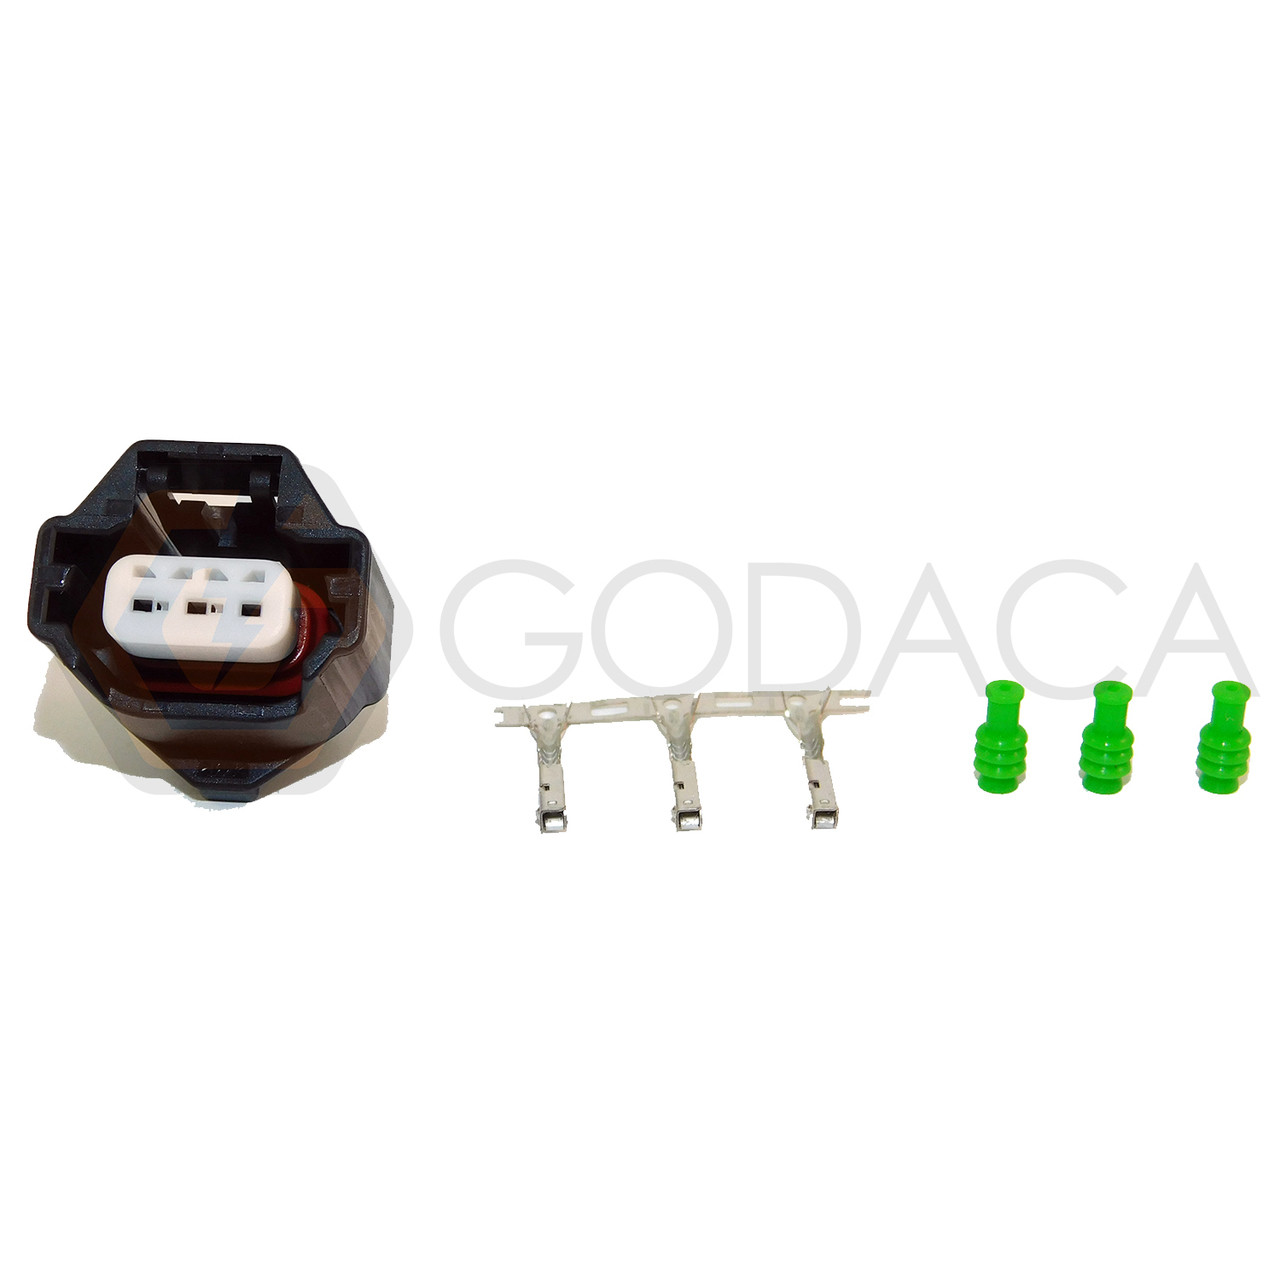 small resolution of 1x connector 3 way 3 pin for camshaft position sensor cps cps0003 w out wire godaca llc